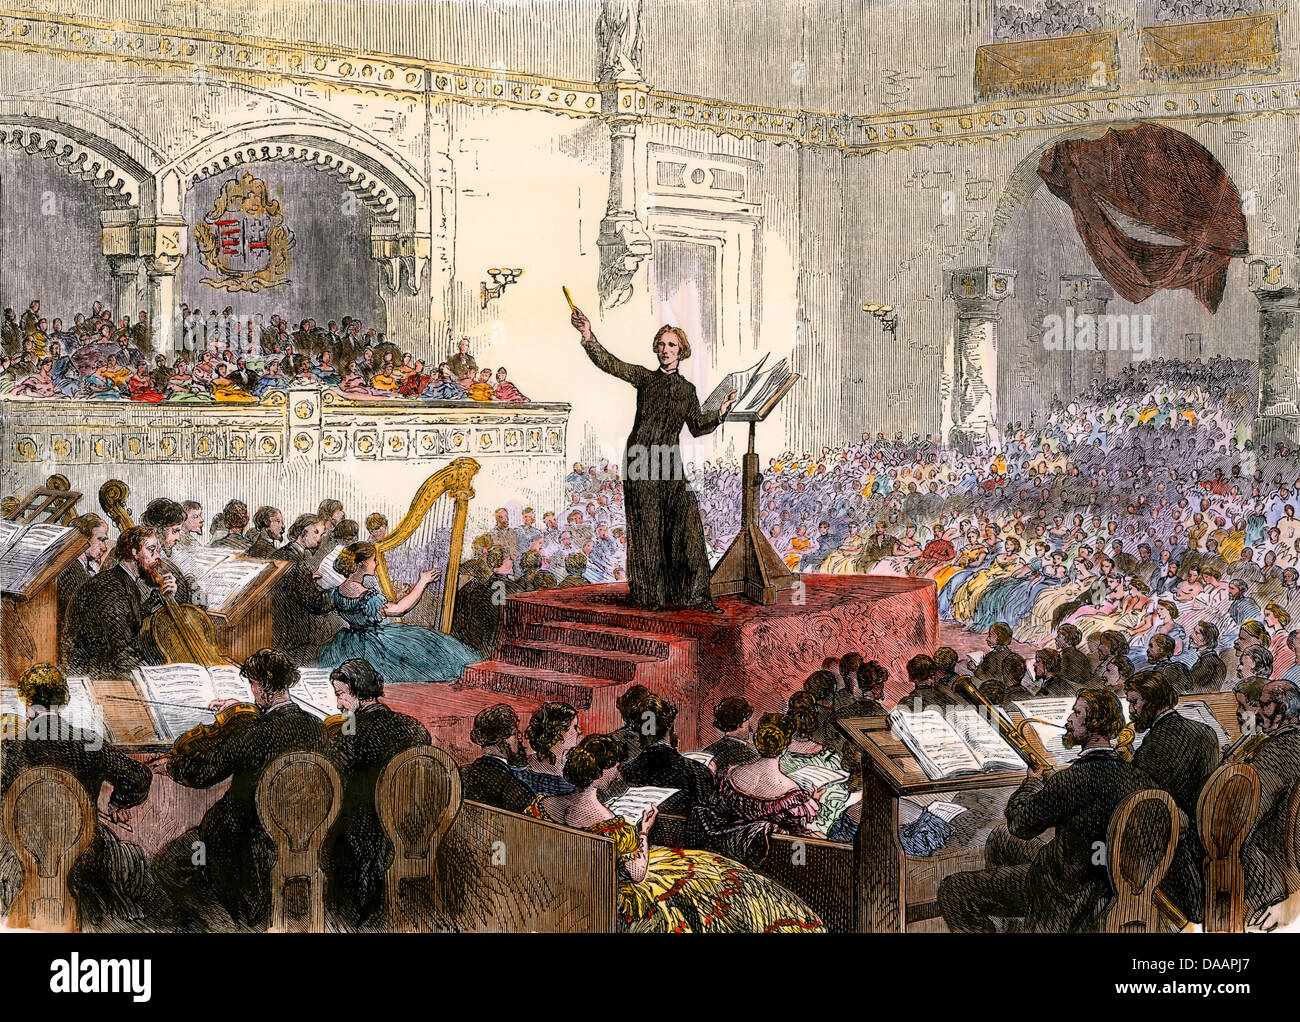 Franzi Liszt conducting his new Oratorio at Budapest, Hungary, 1860s. Stock Photo